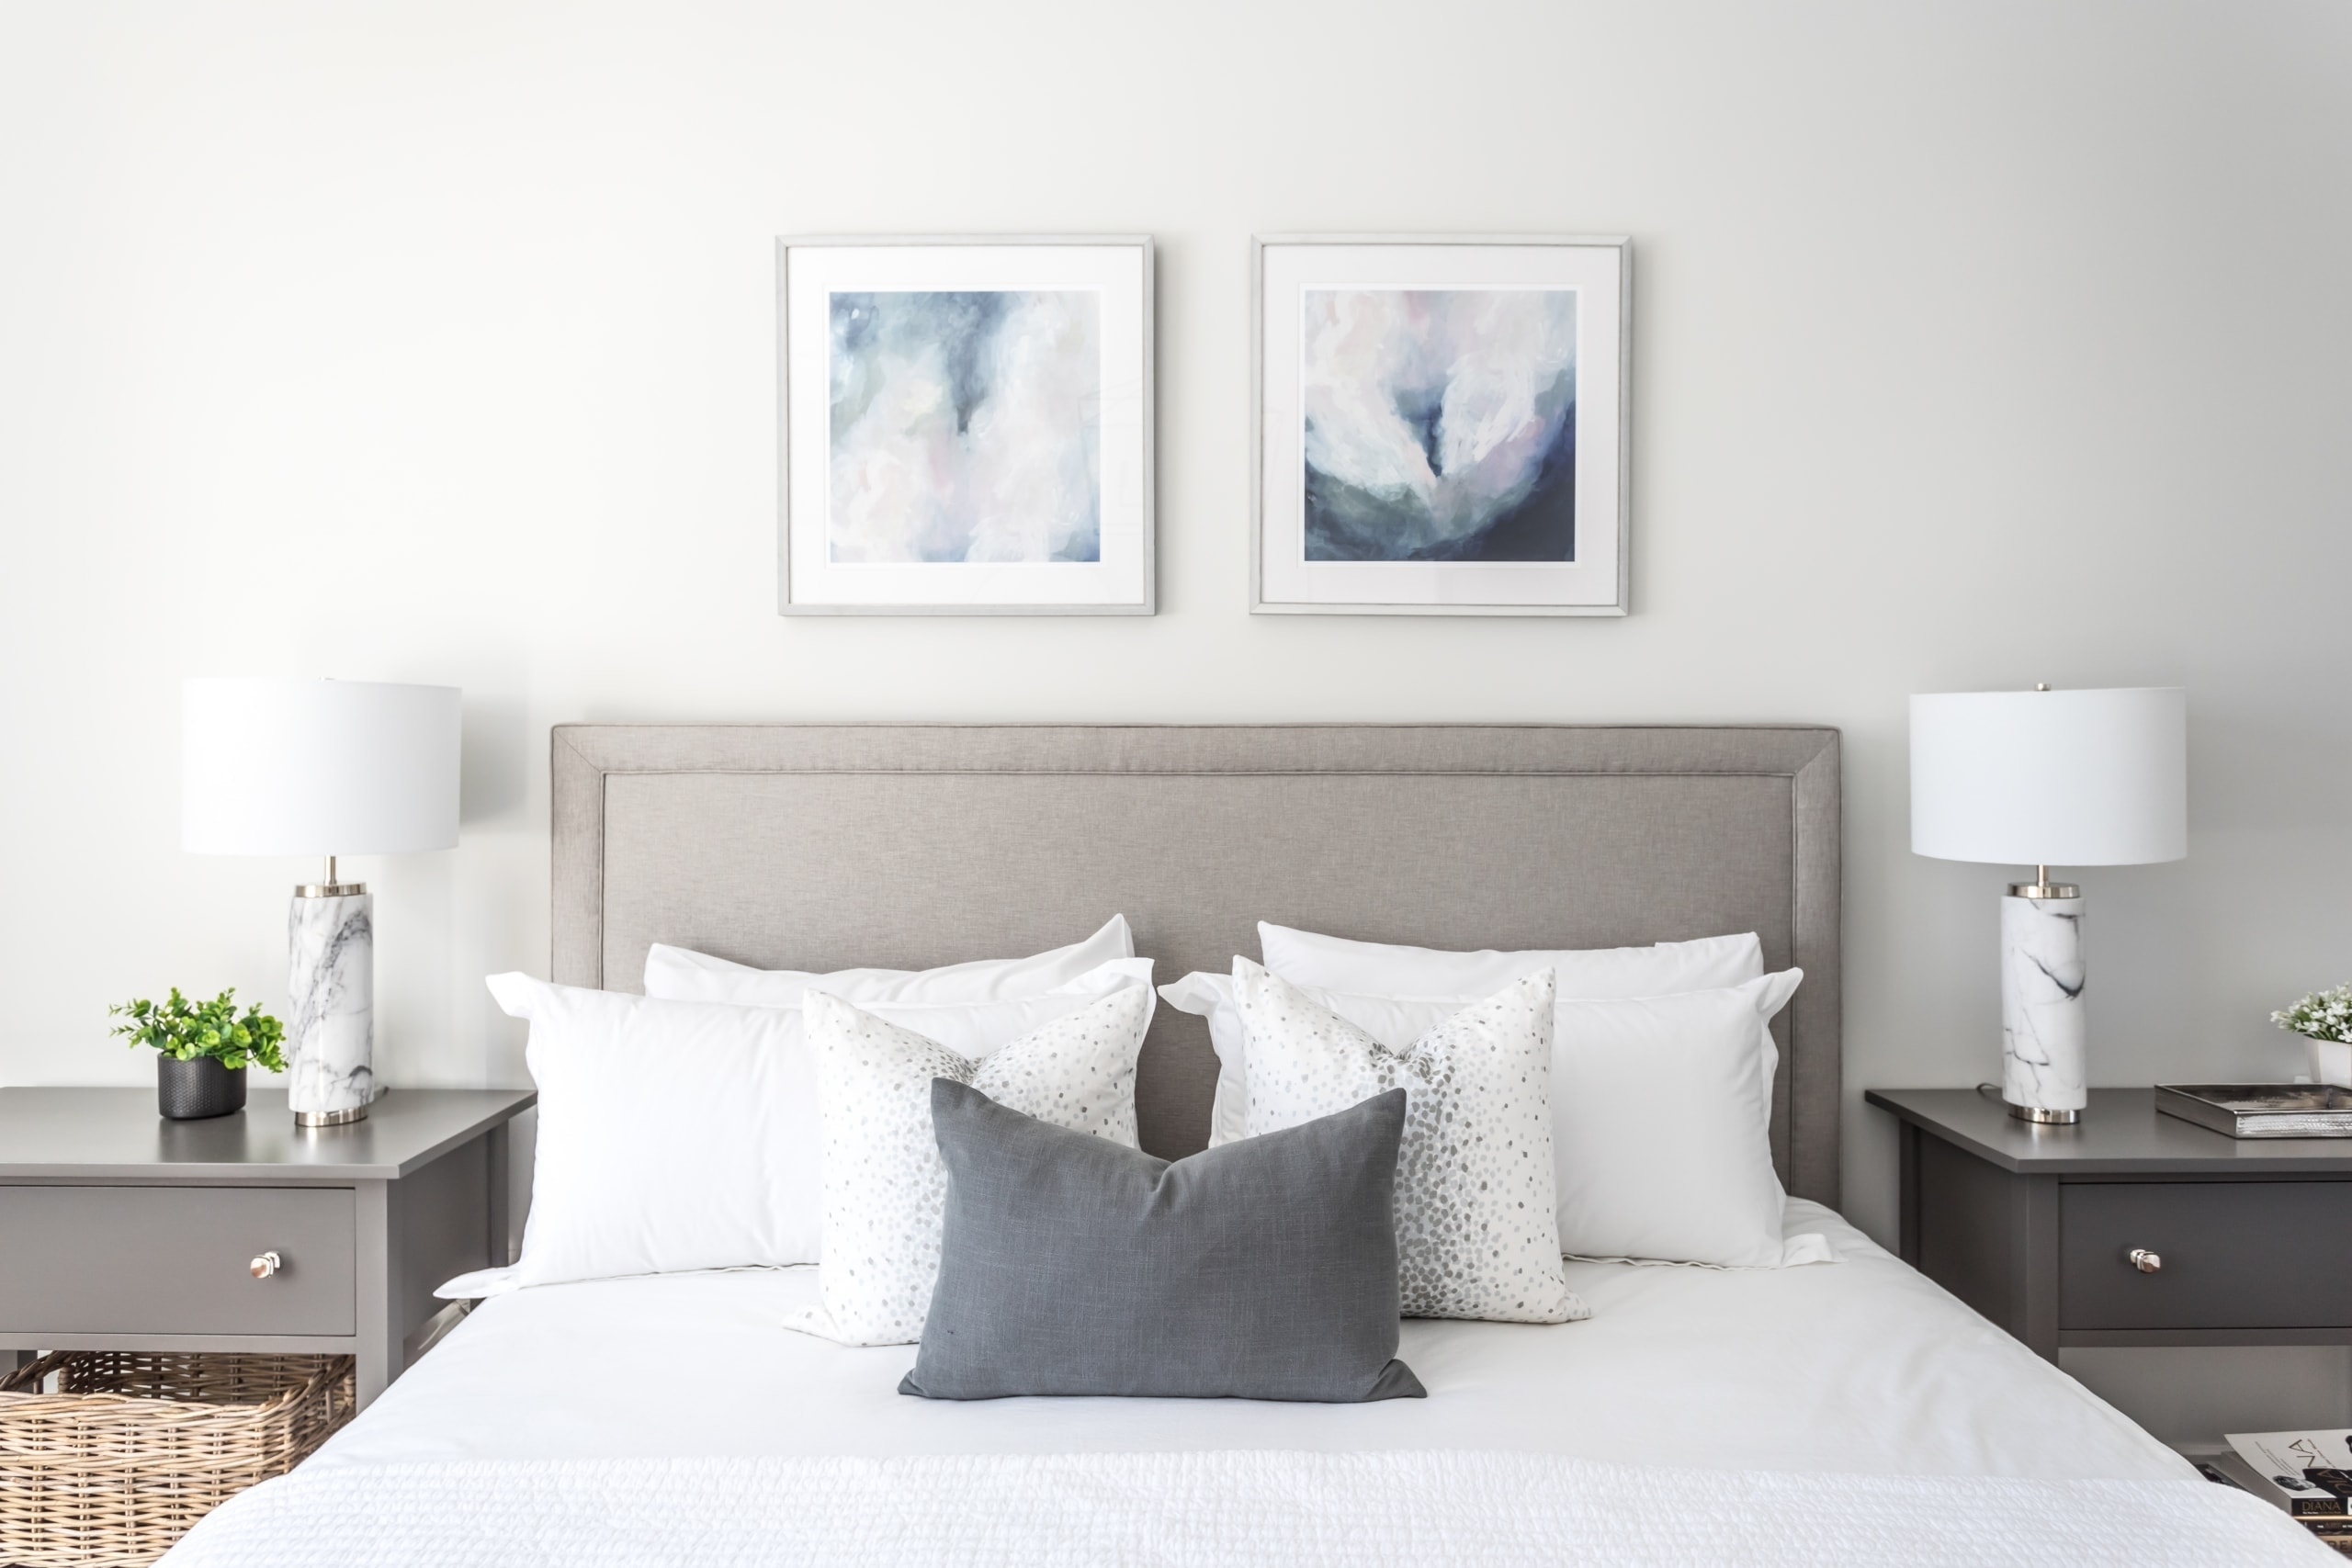 Triangle of pillows going dark to light on a large bed